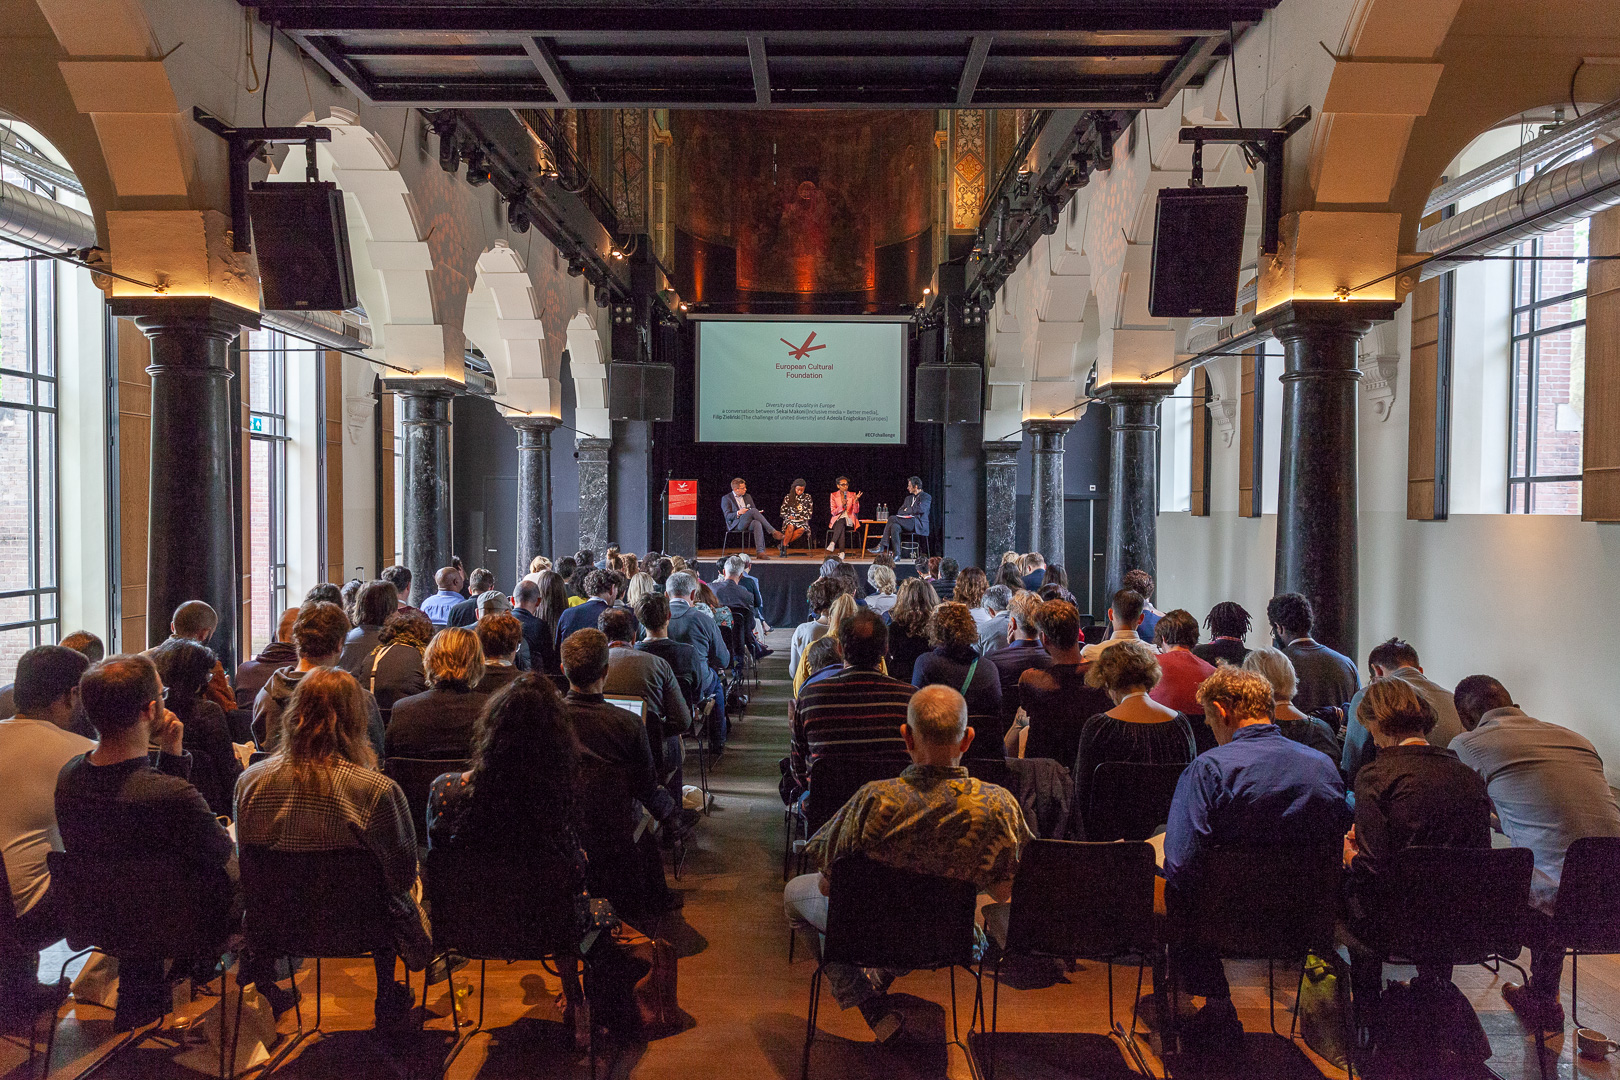 European Cultural Challenge 2018 - A two-day advocacy retreat to work on positive change through culture